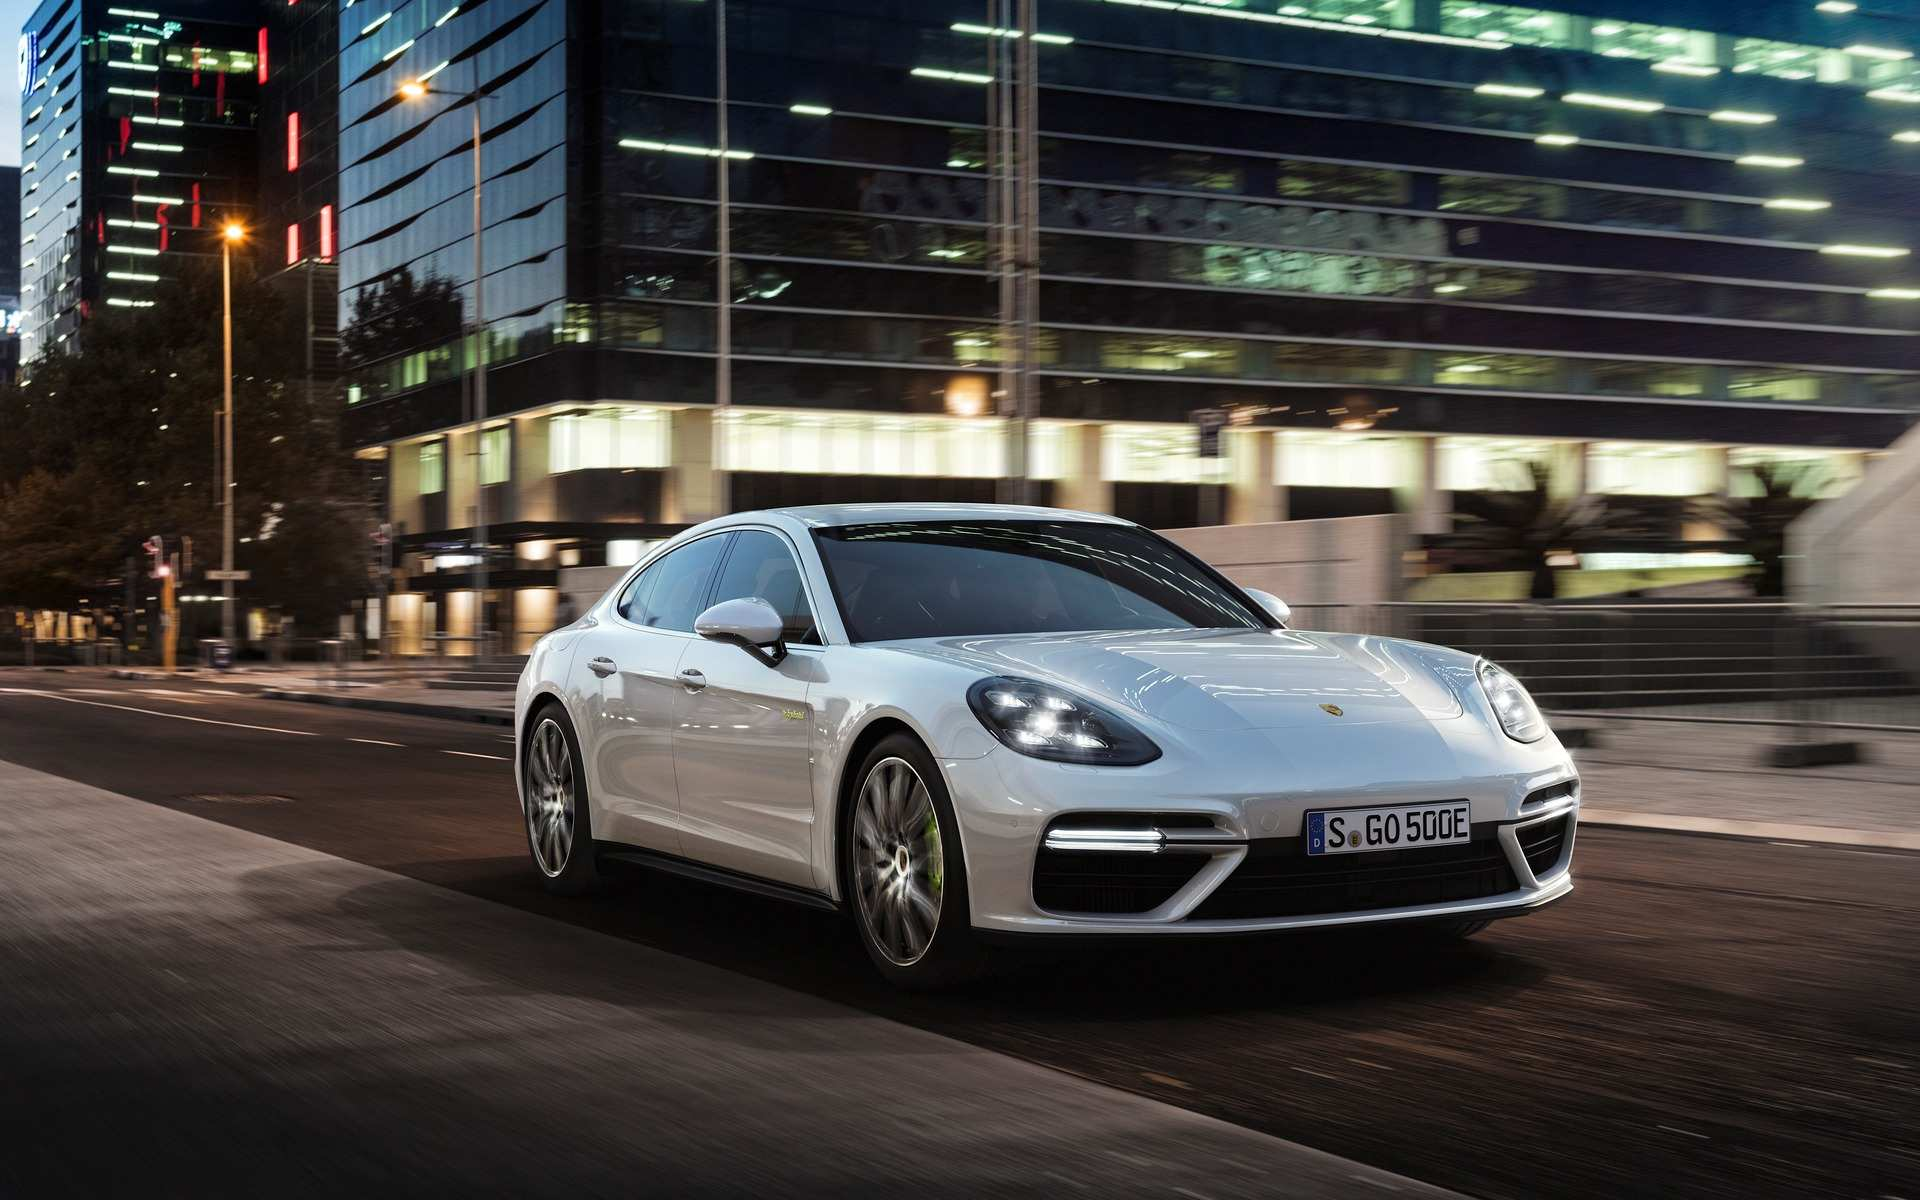 91 The Best 2020 Porsche Panamera Price And Review